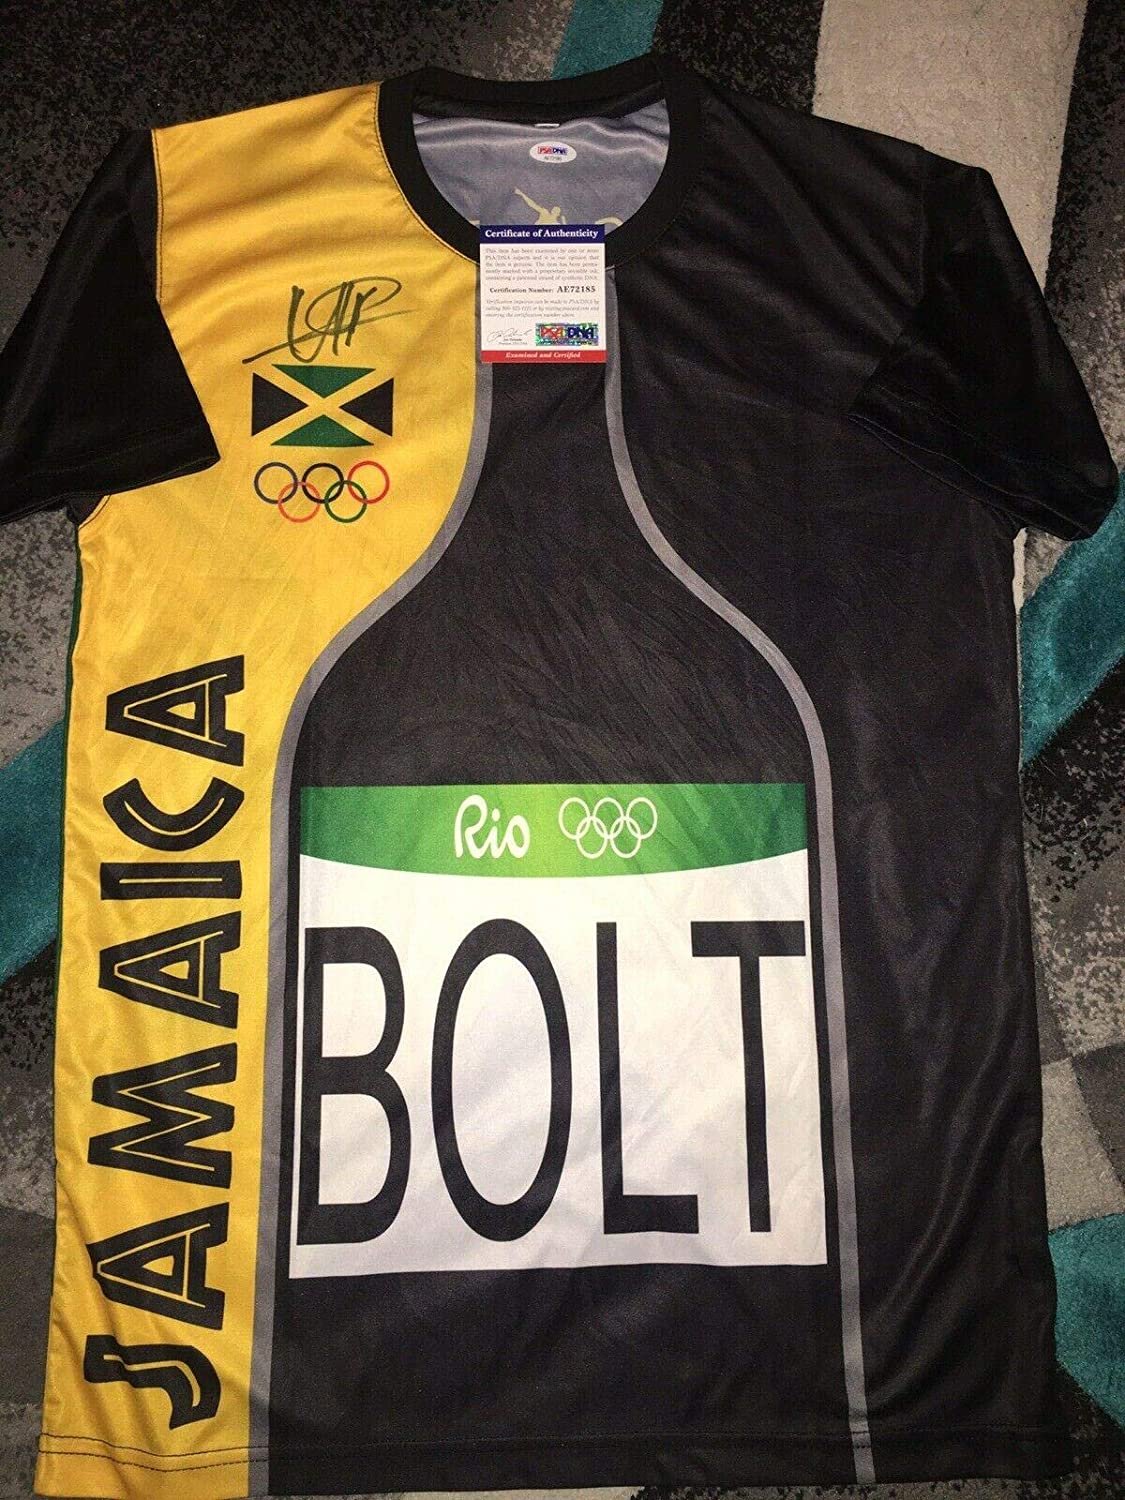 Usain Bolt Signed Rio Olympics Jersey Gold Medal 9x Gold Greatness - PSA/DNA Certified - Autographed Olympic Jerseys